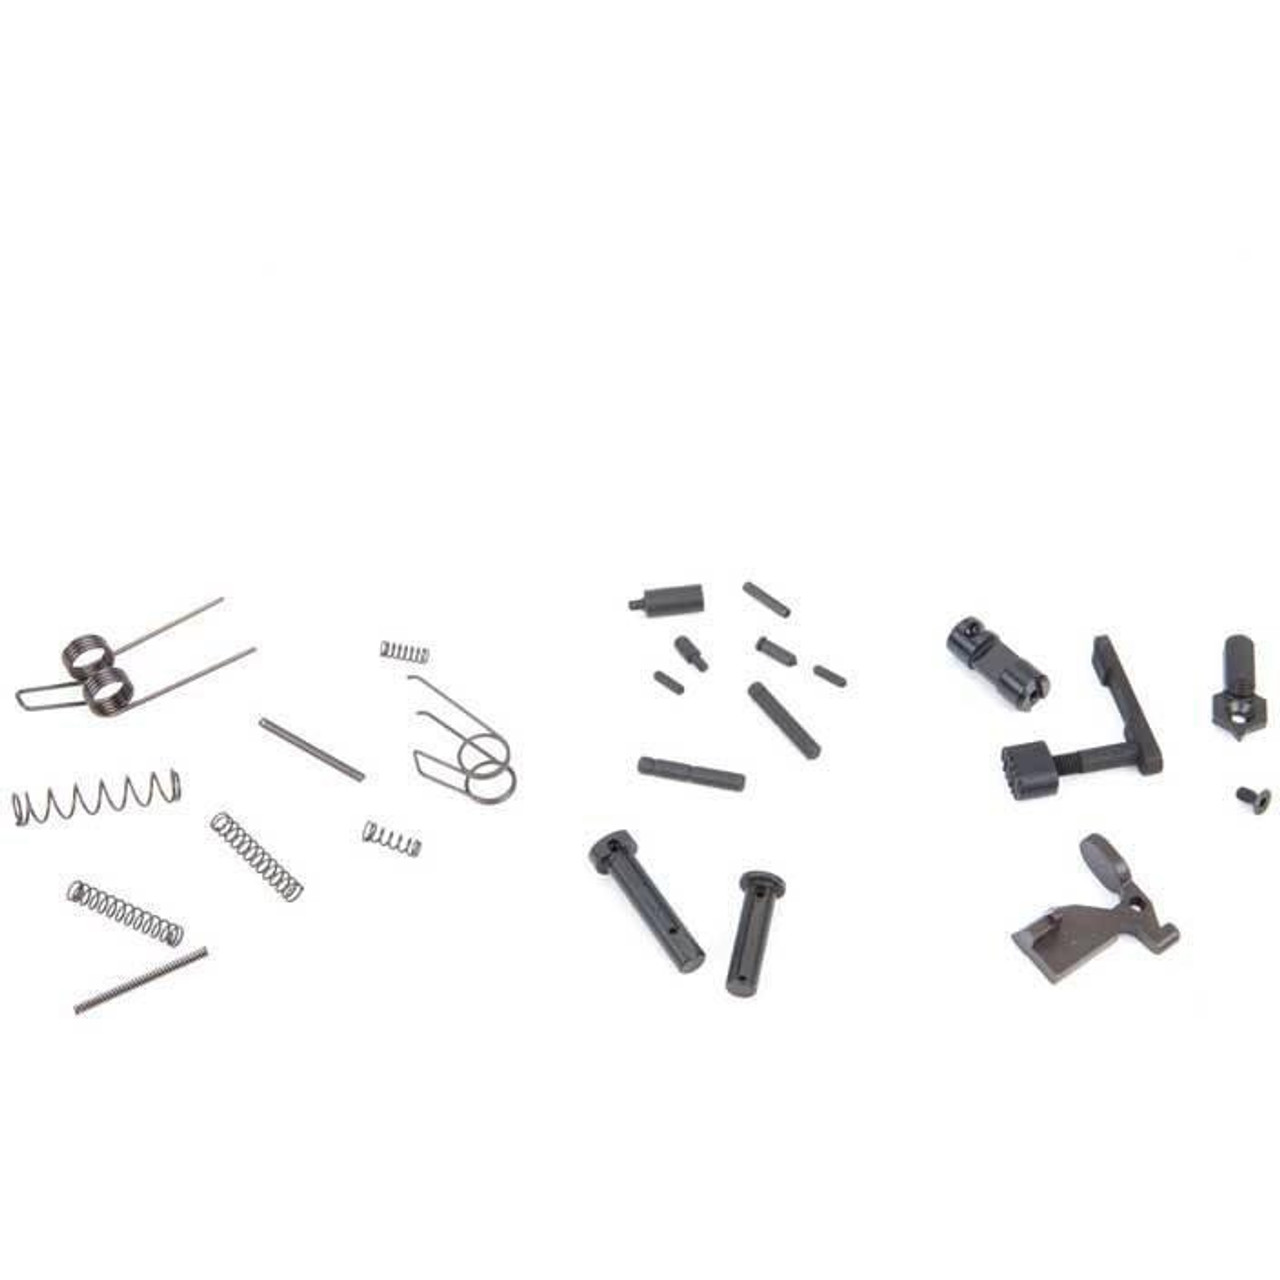 Strike Industries AR15 AR Lower Receiver Parts (less Trigger Assembly,Grip,Trig Grd)